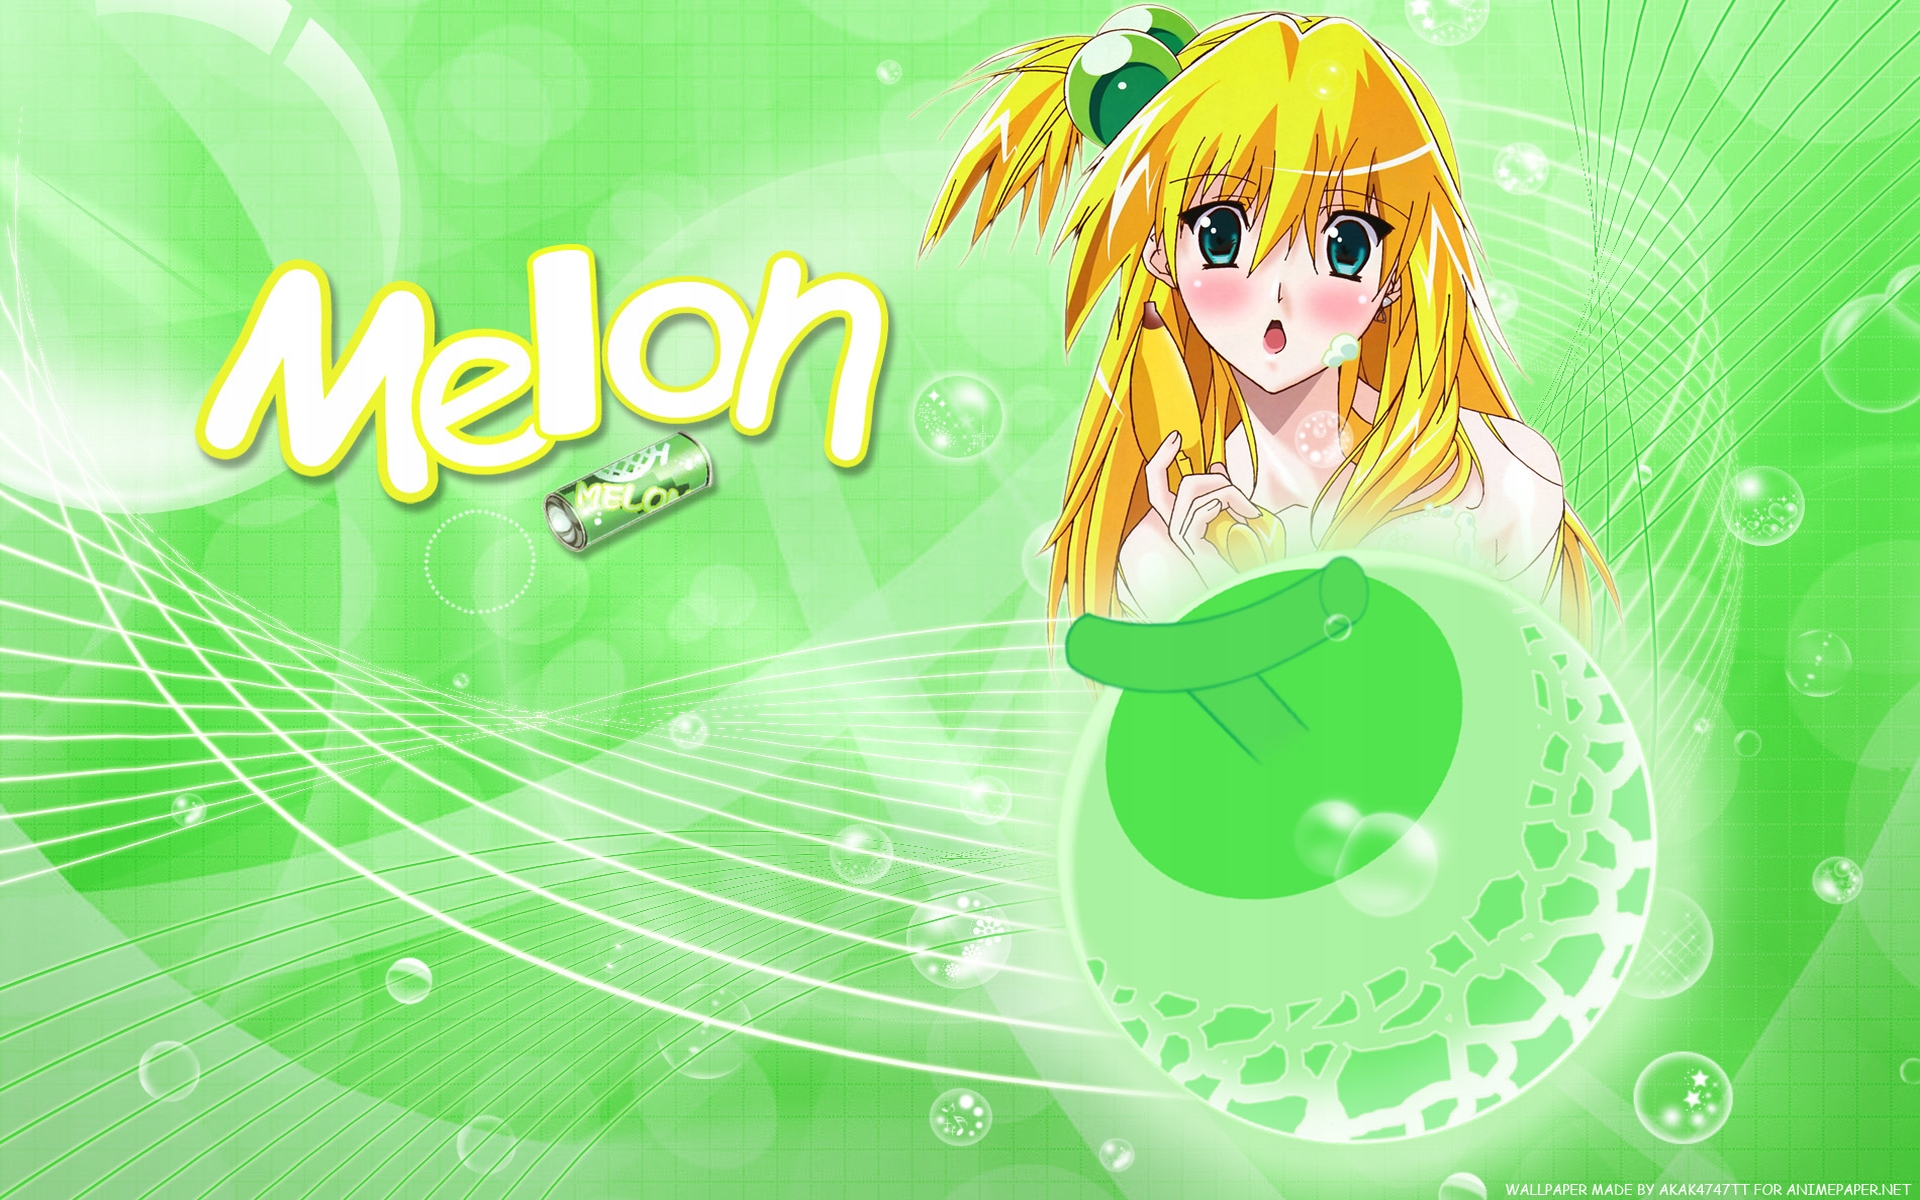 anime wallpaper widescreen, naruto wallpaper widescreen, desktop wallpaper widescreen, bleach wallpaper widescreen, death note wallpaper widescreen, wallpapers widescreen, one piece wallpaper widescreen, dead or alive tina wallpaper widescreen, neon genesis evangelion wallpaper widescreen-102